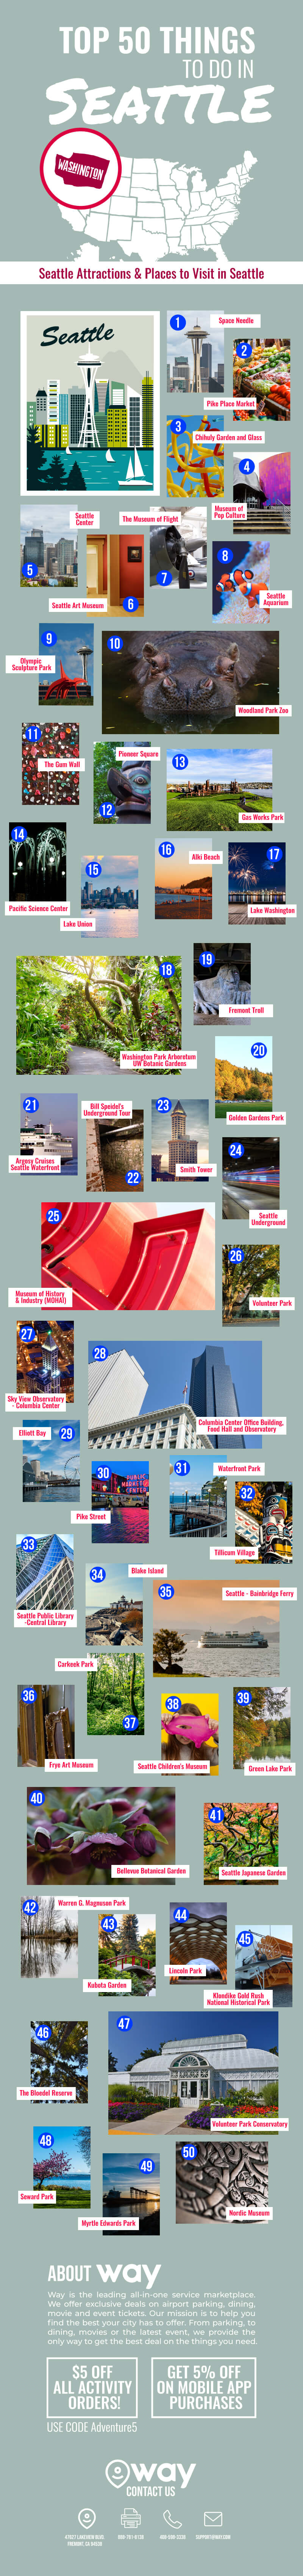 Top-50-Things-to-do-in-Seattle-infographic-plaza